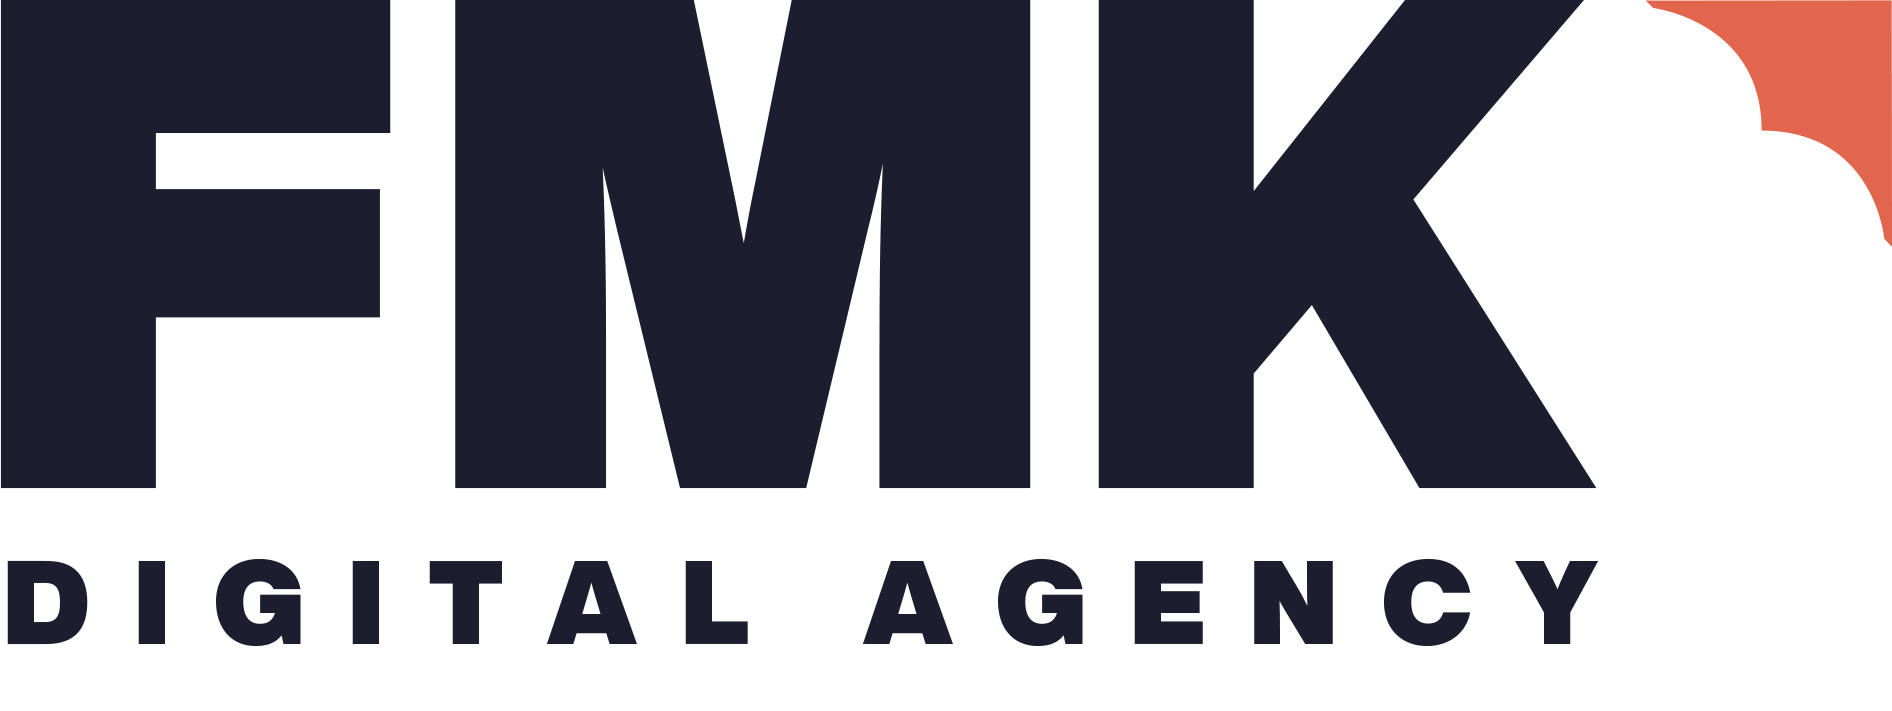 FMK Digital Agency